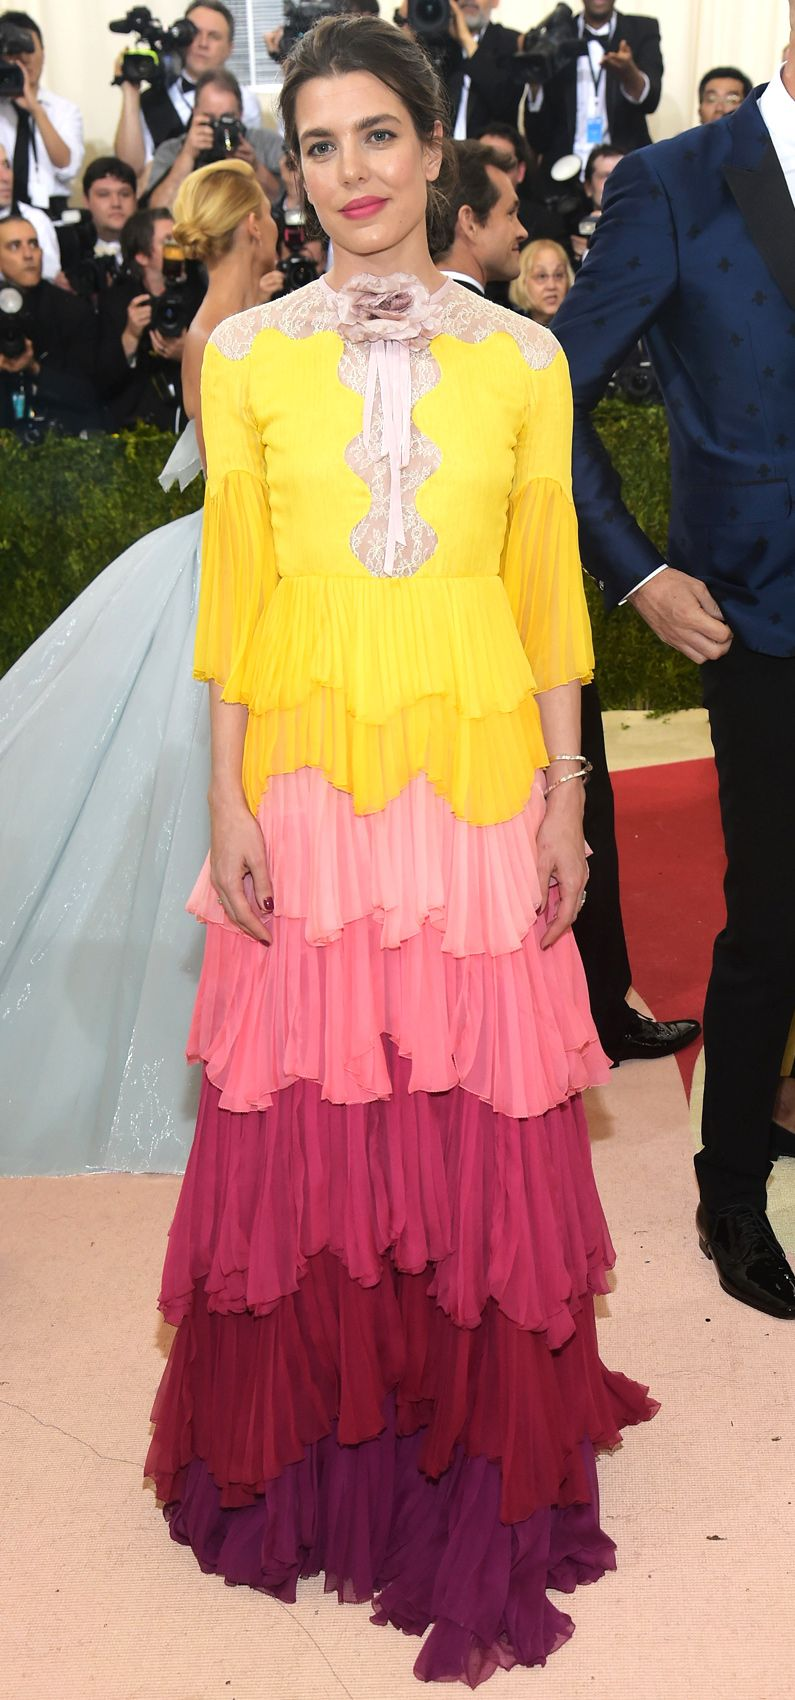 2016 - Charlotte Casiraghi in Gucci at Met Gala in New York | Royals ...